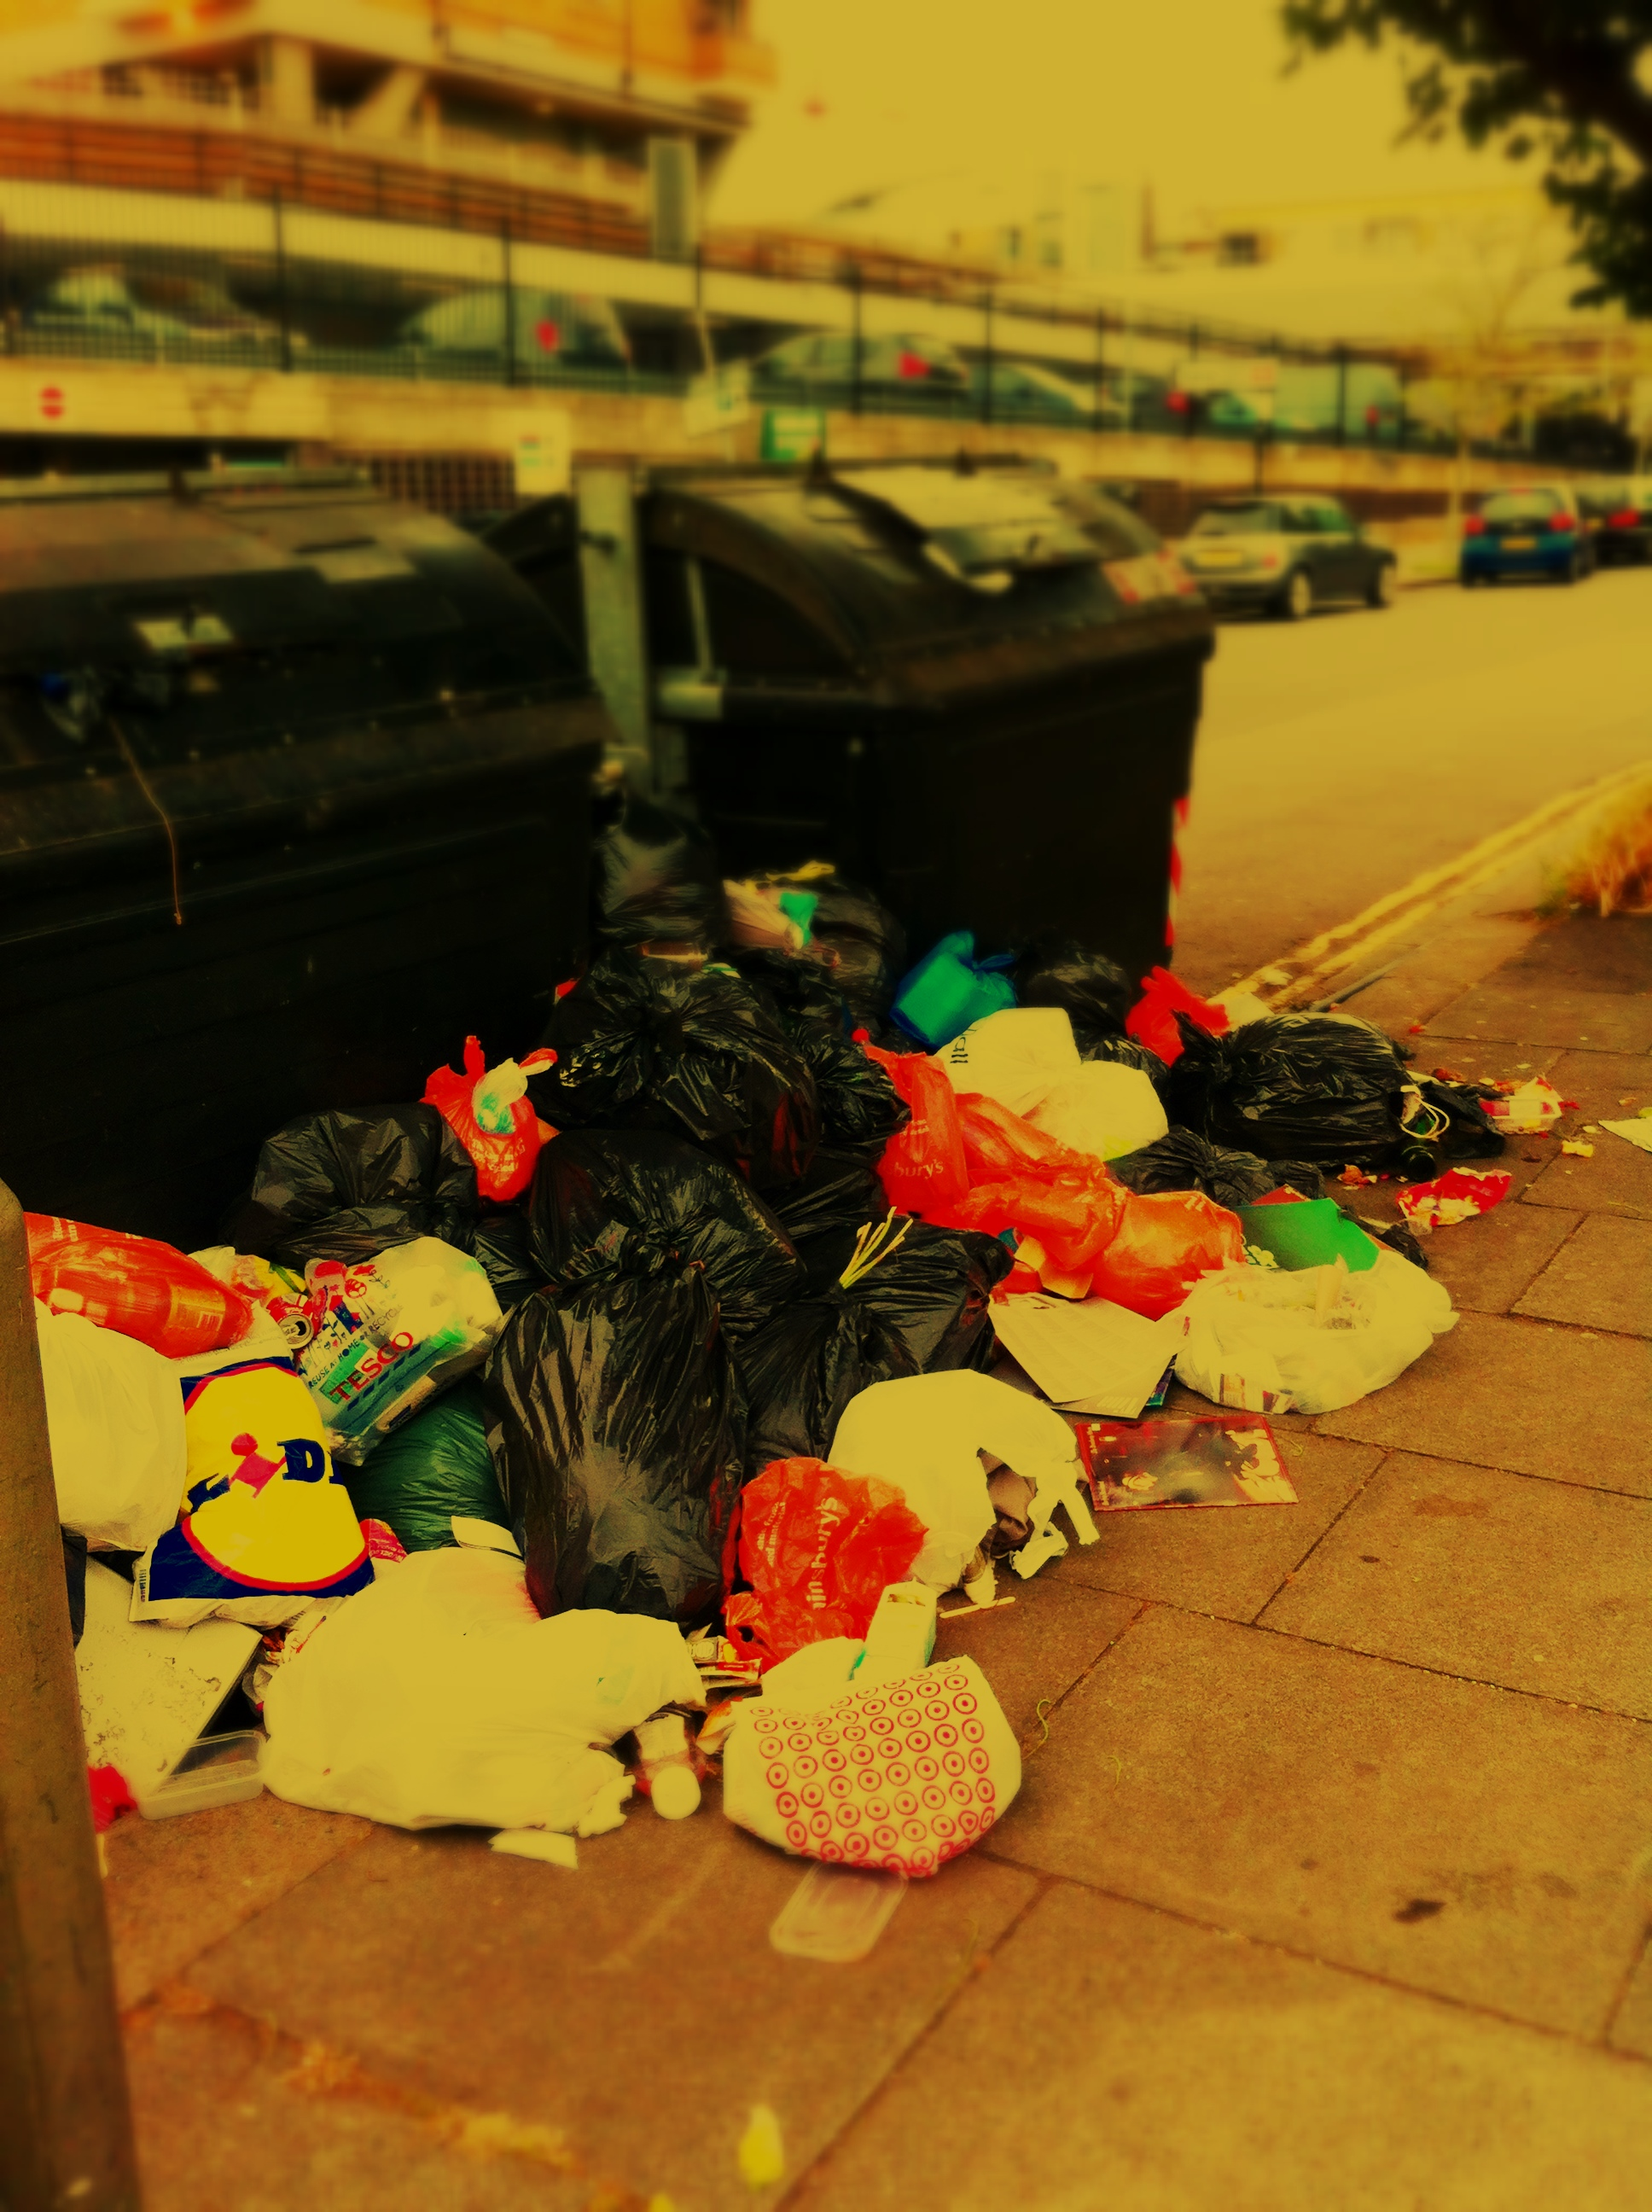 Brighton And Hove - Binmen Strike 2013 - Car Park Litter